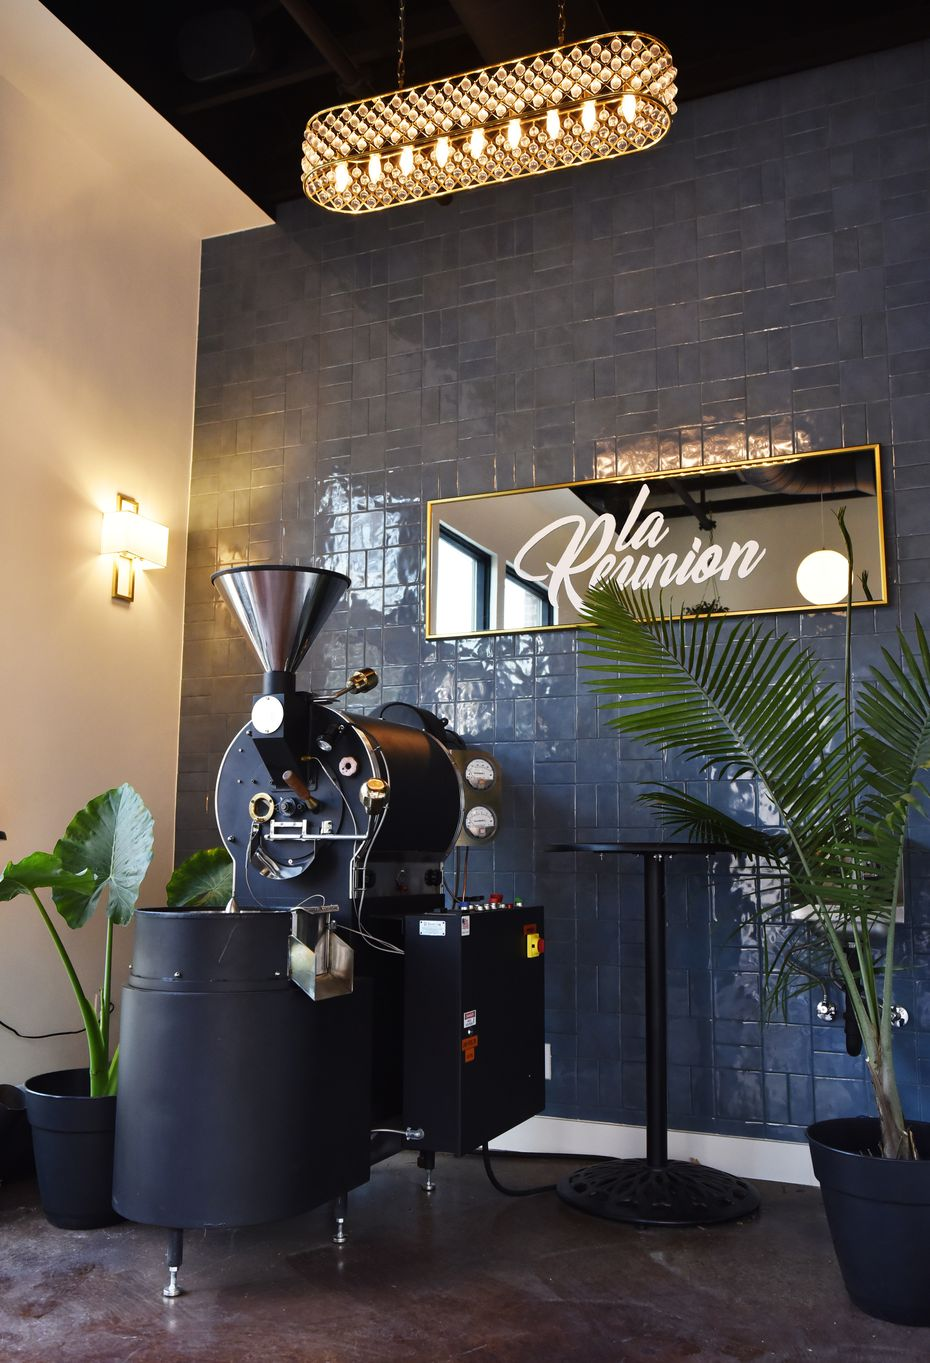 La Reunion coffee shop and restaurant in the Bishop Arts District has a roaster on display in front of the store. At an event on Jan. 20, coffee fanatics can learn how it works.